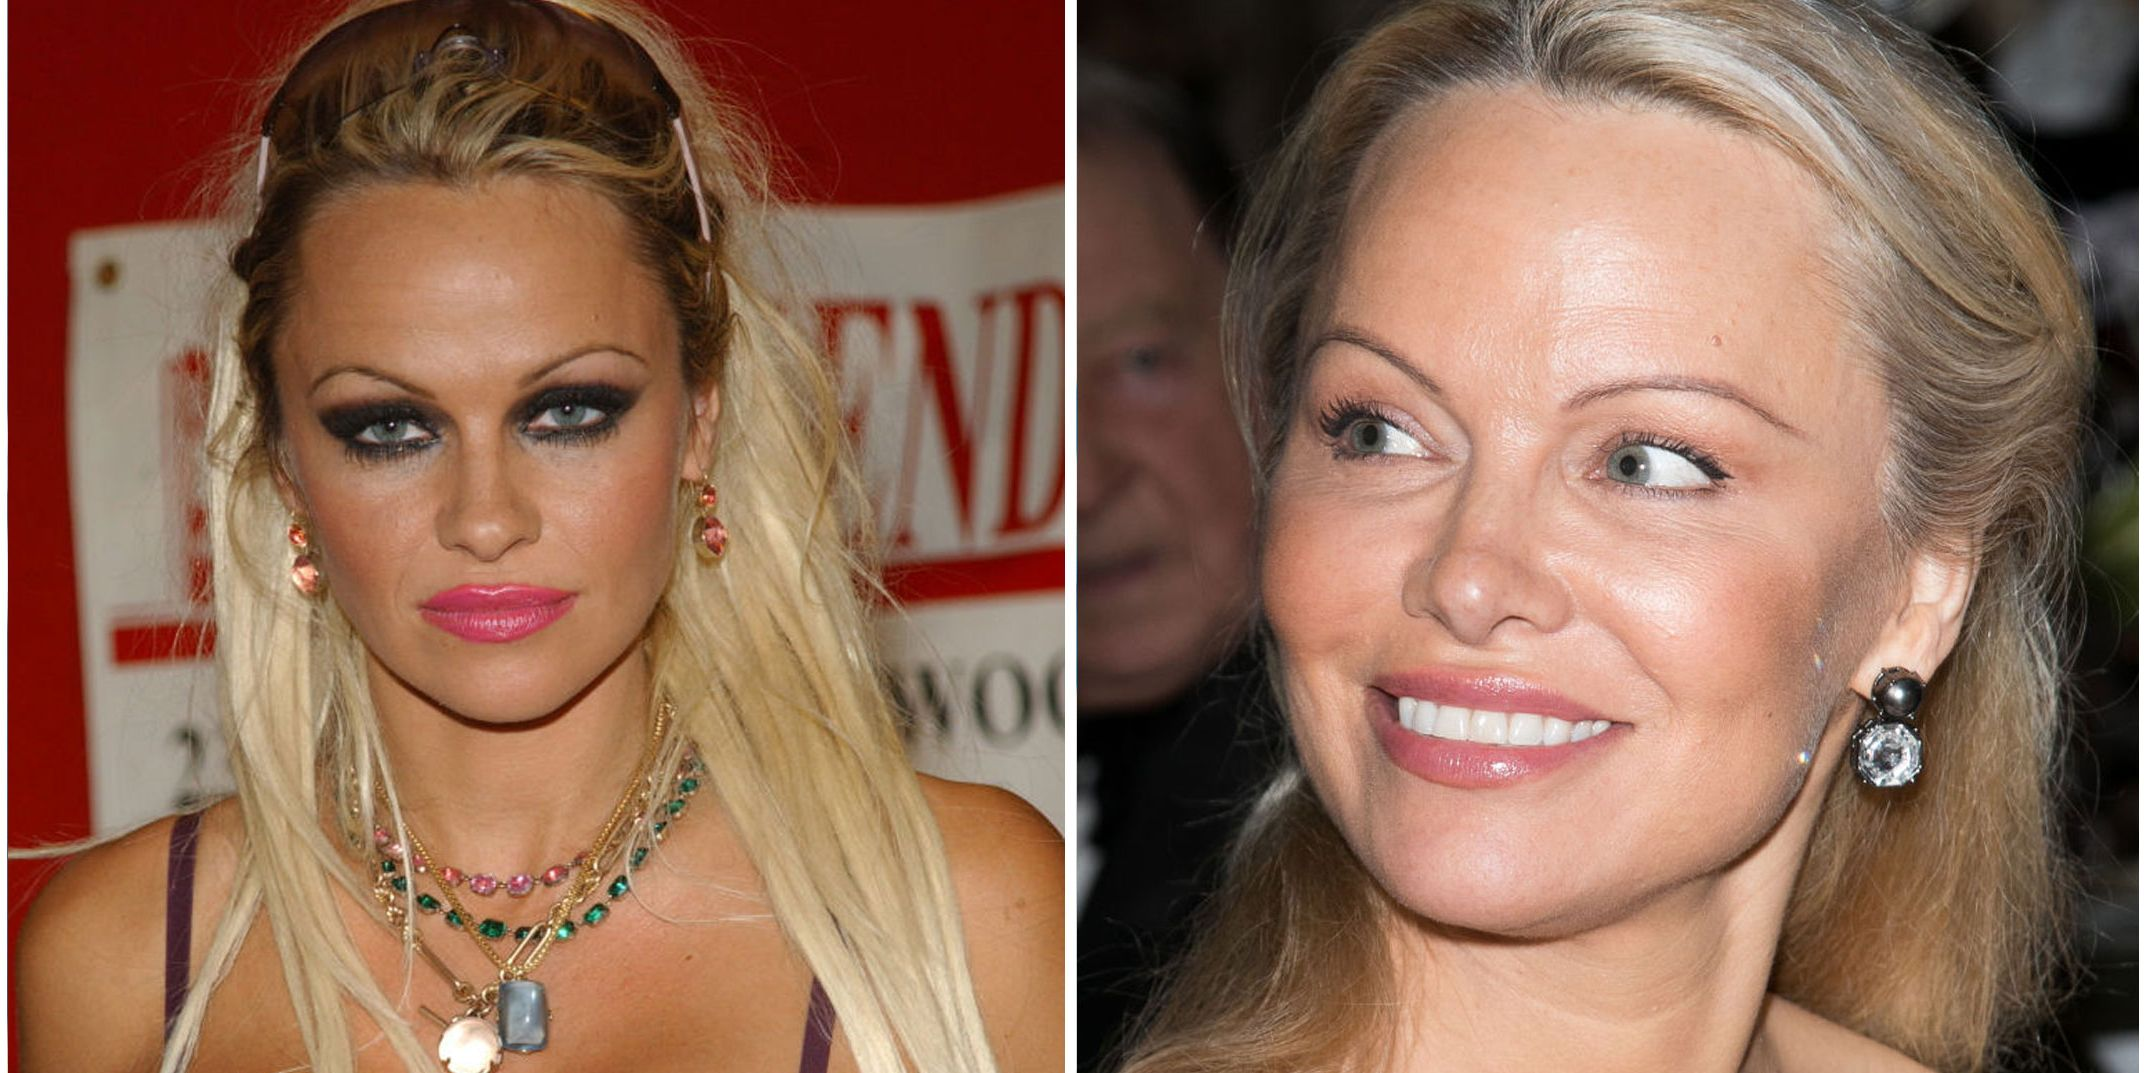 Pamela Anderson The Baywatch star's name has been synonymous with bleach blonde hair, fake tanner, and plump lips since she first appeared in that famous red bikini. But recently, the 49-year-old started toning things down — she softened the blonde in her hair and has been wearing super simple makeup.